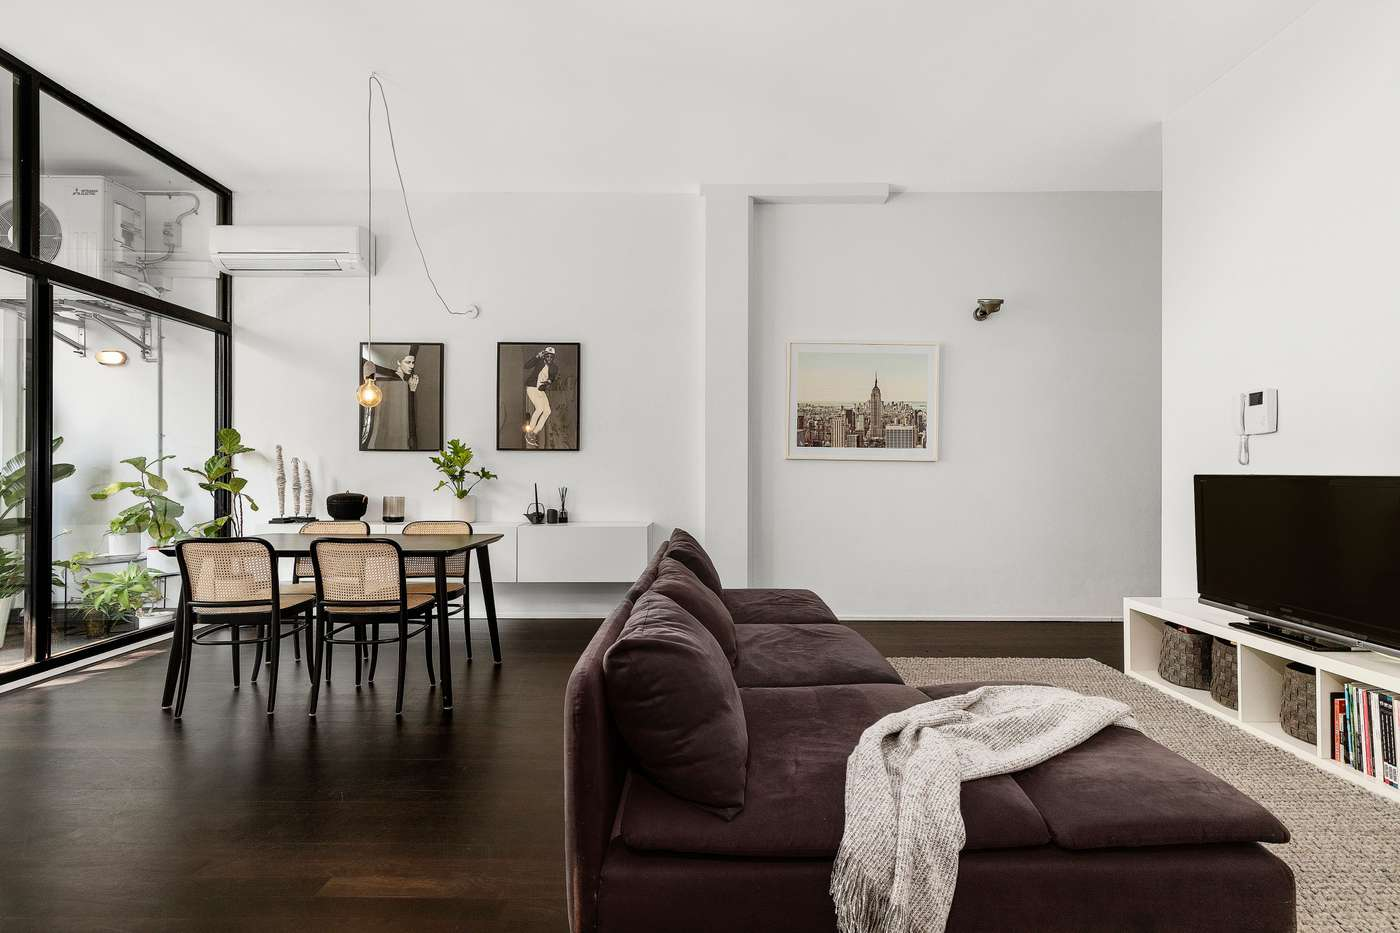 Main view of Homely apartment listing, 29/277 Crown Street, Surry Hills, NSW 2010